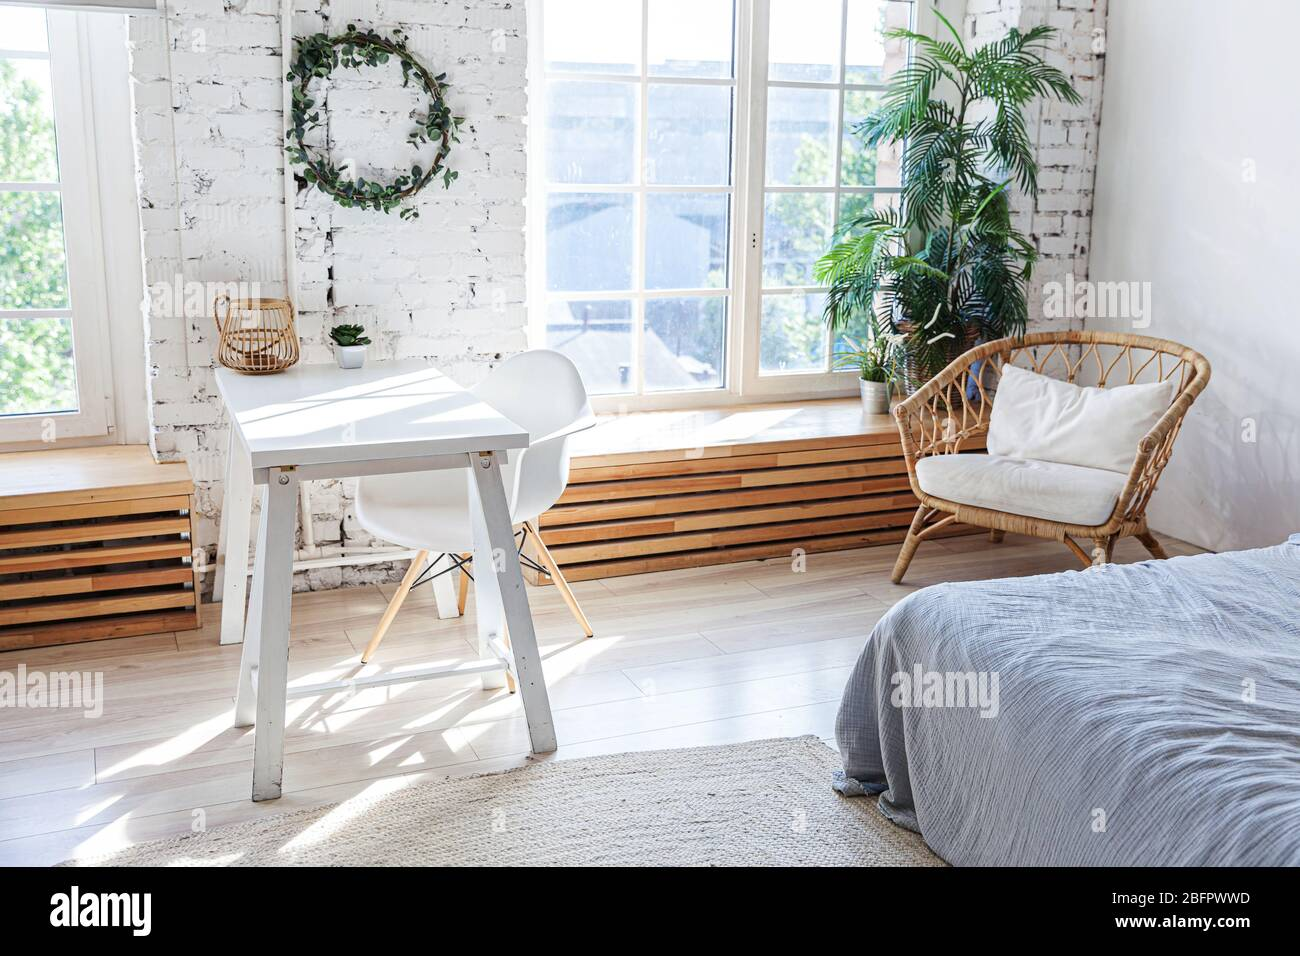 Stylish Loft Modern Home Office Interior Spacious Design Apartment With Light Walls Large Windows And Writing Desk Clean Modern Decoration With Elegant Furniture In Minimalist Scandinavian Style Stock Photo Alamy